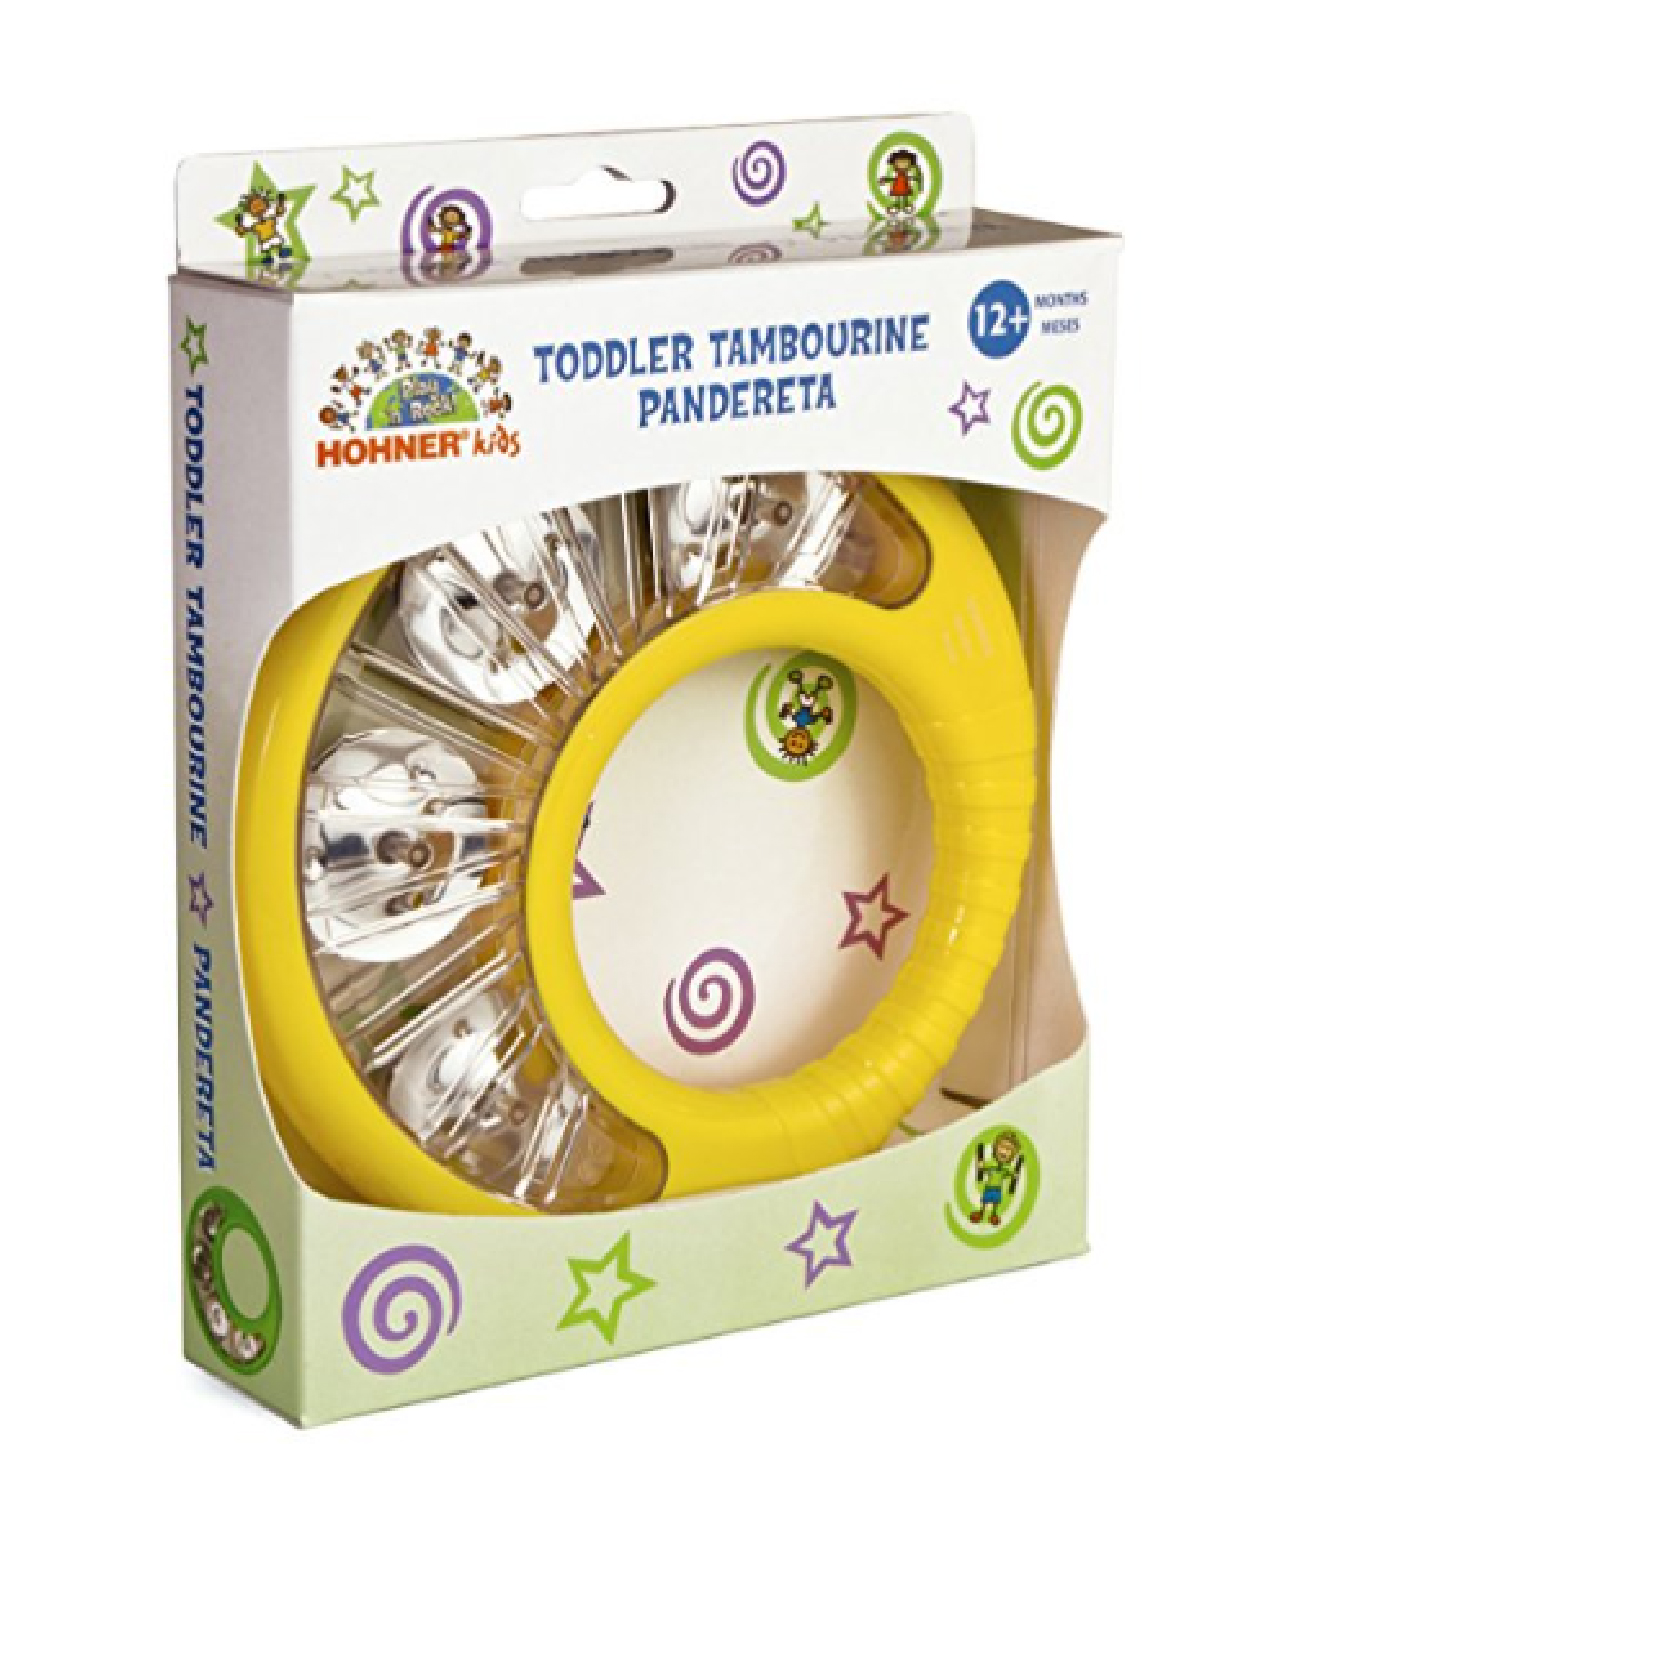 Hohner Kids Toddler Tambourine